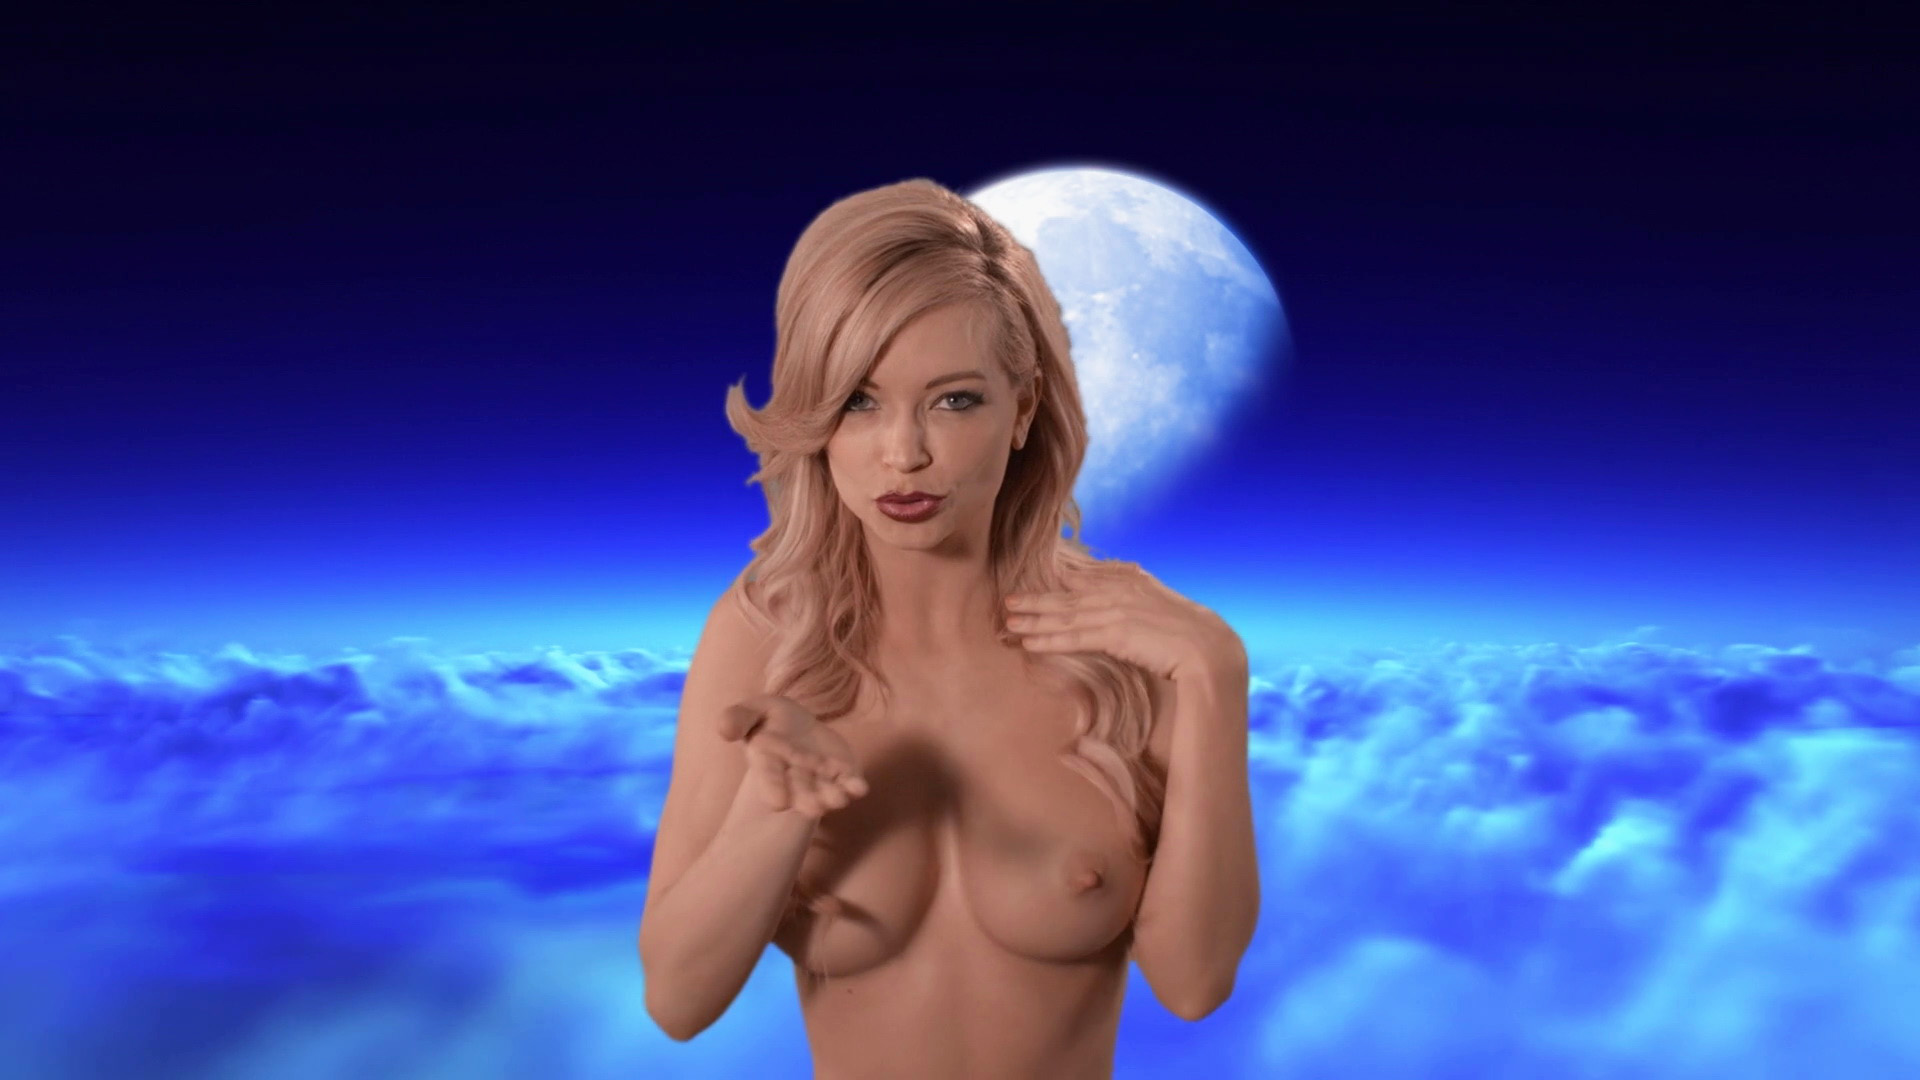 Educational sex videos for couples